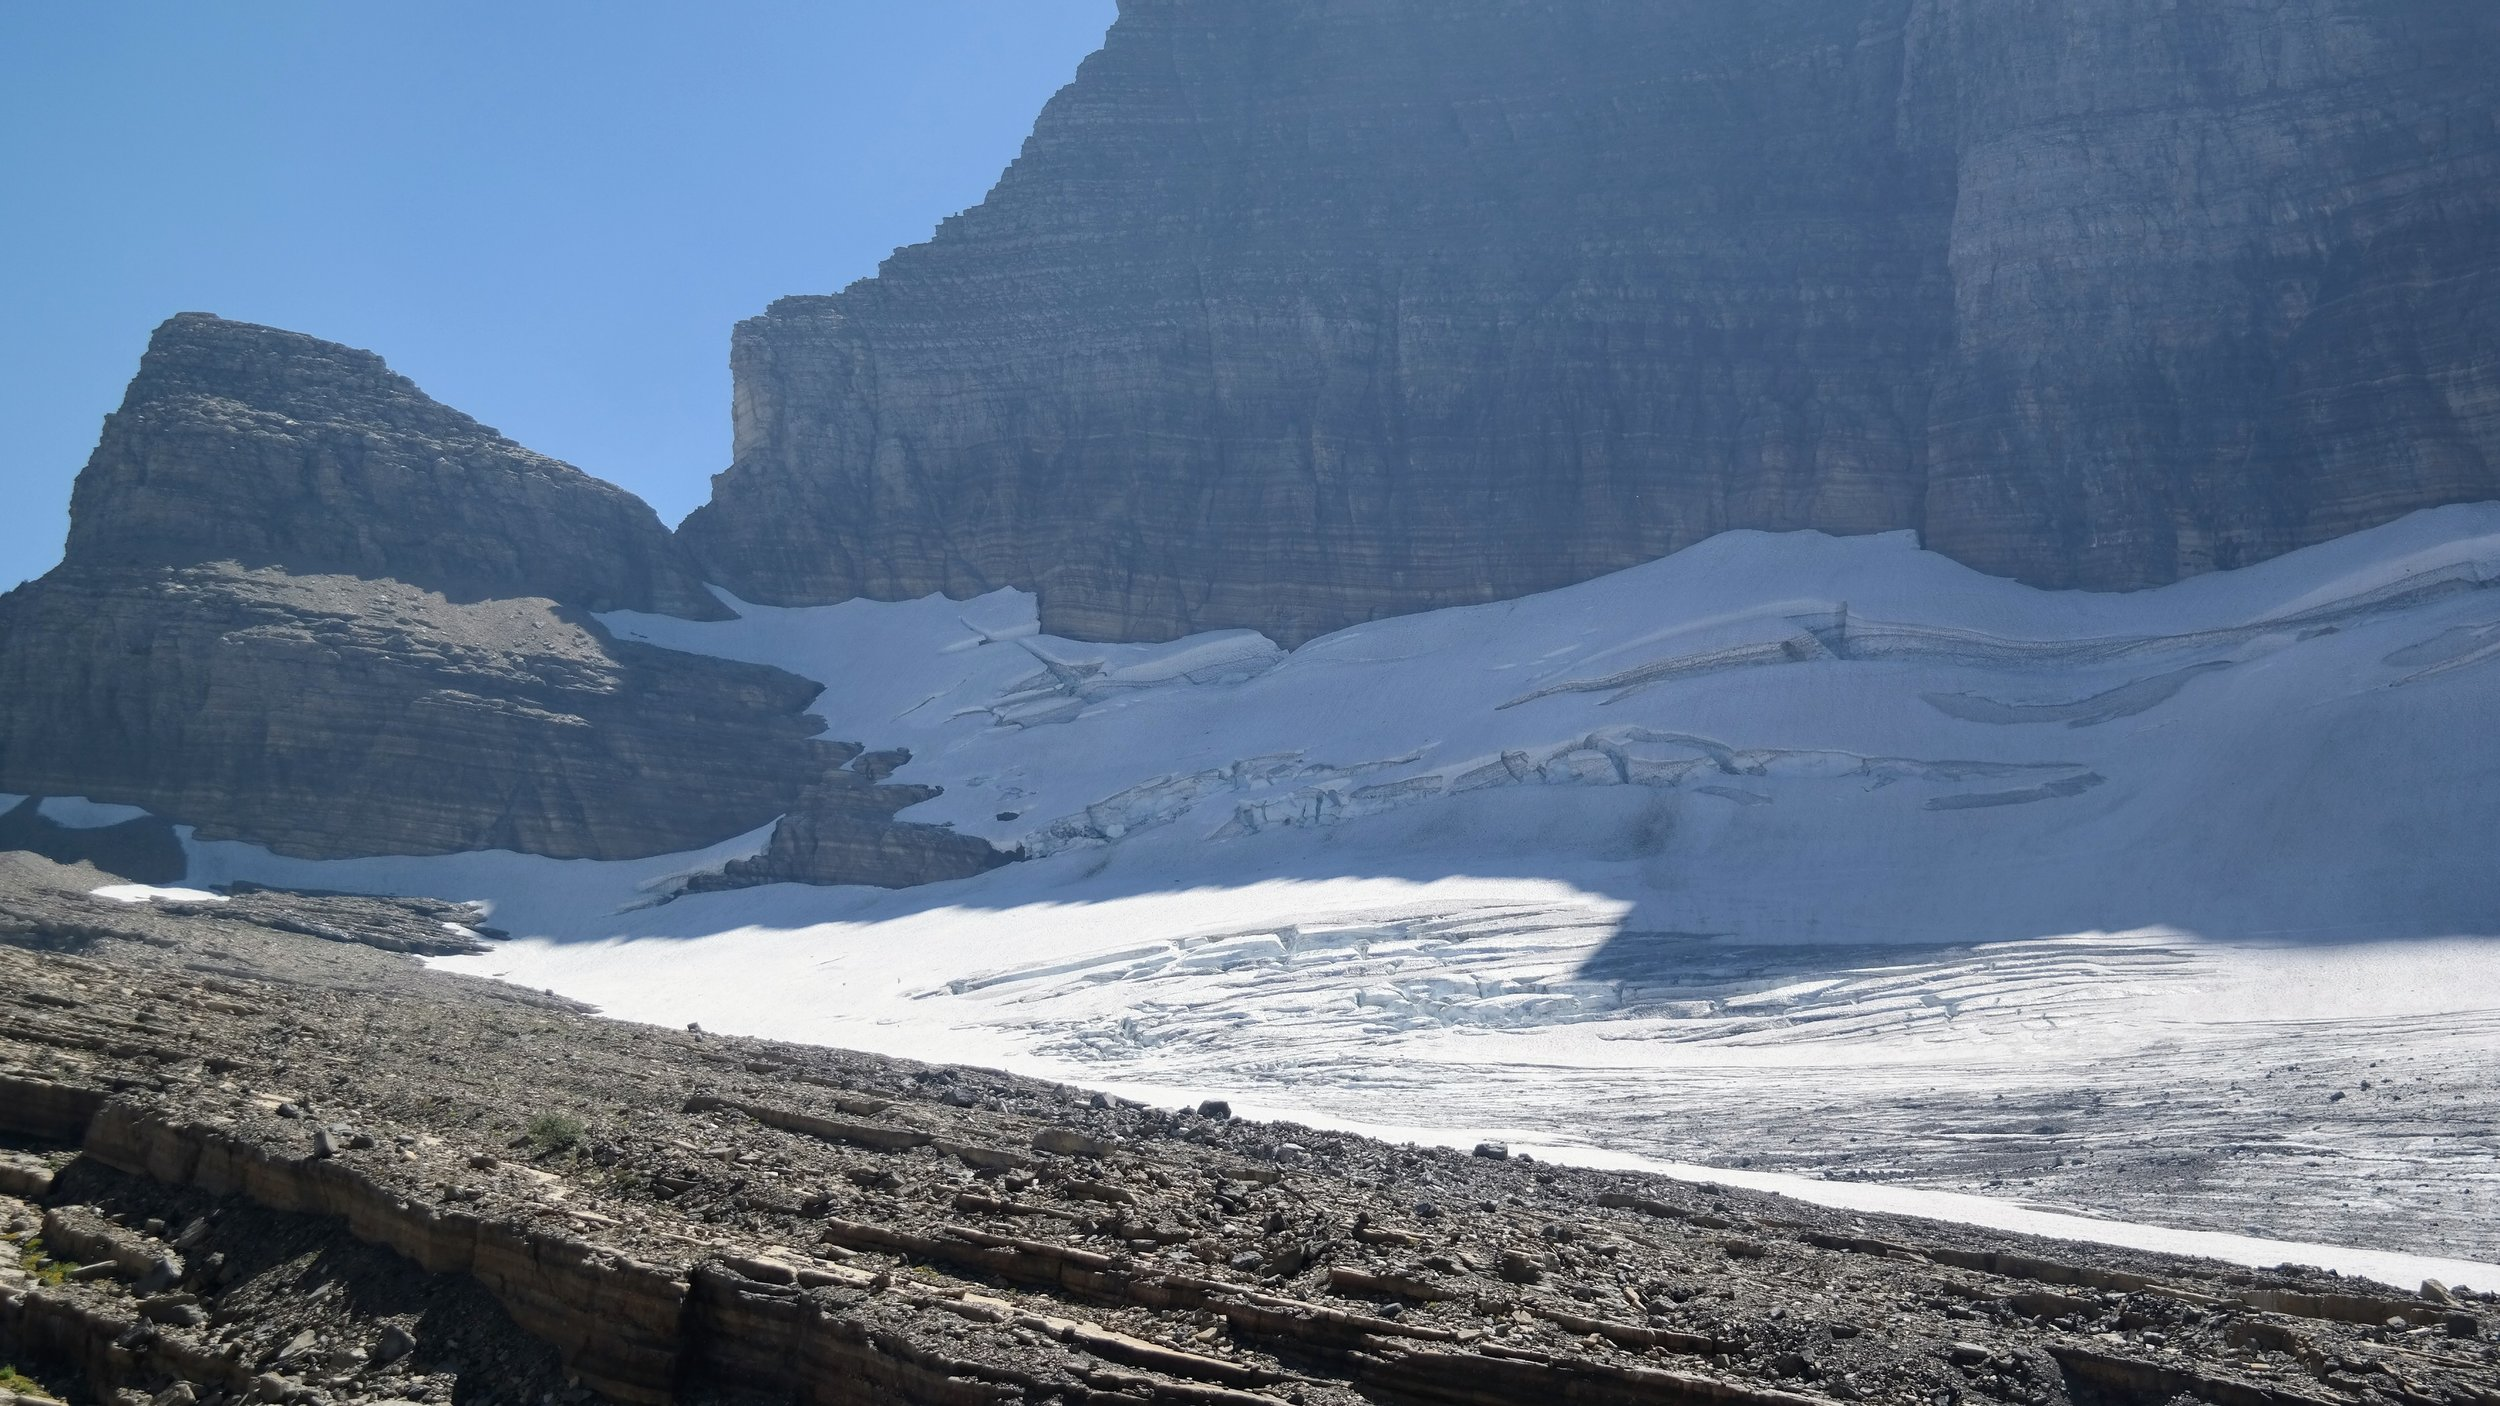 Close up photo of Grinnell Glacier